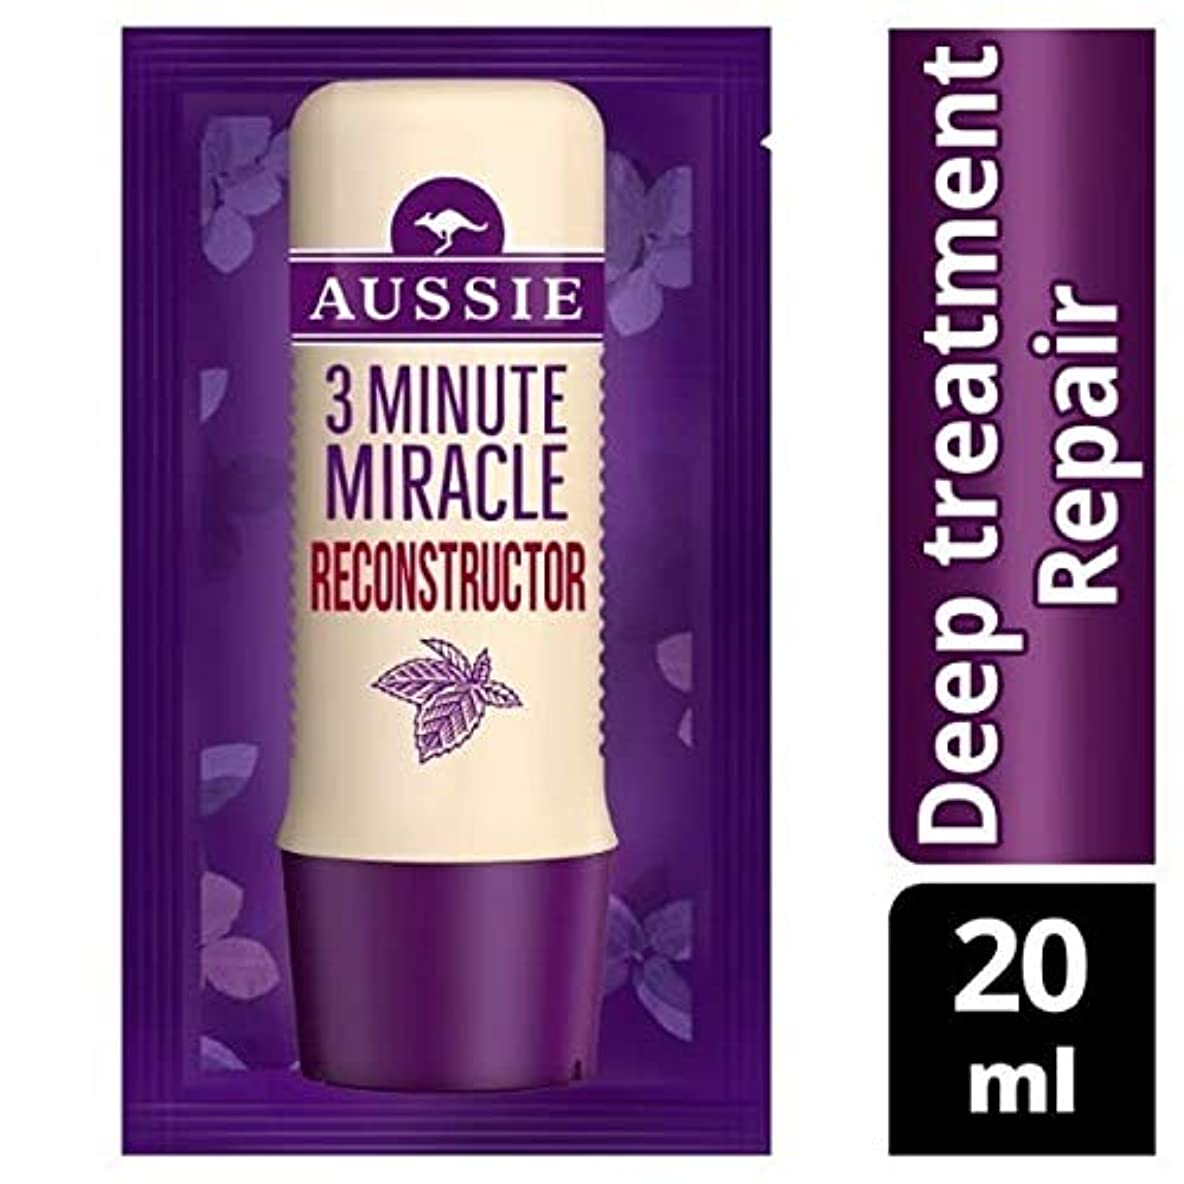 [Aussie ] オーストラリアの深い治療3分の奇跡の再構成の20ミリリットル - Aussie Deep Treatment 3 Minute Miracle Reconstructor 20ml [並行輸入品]